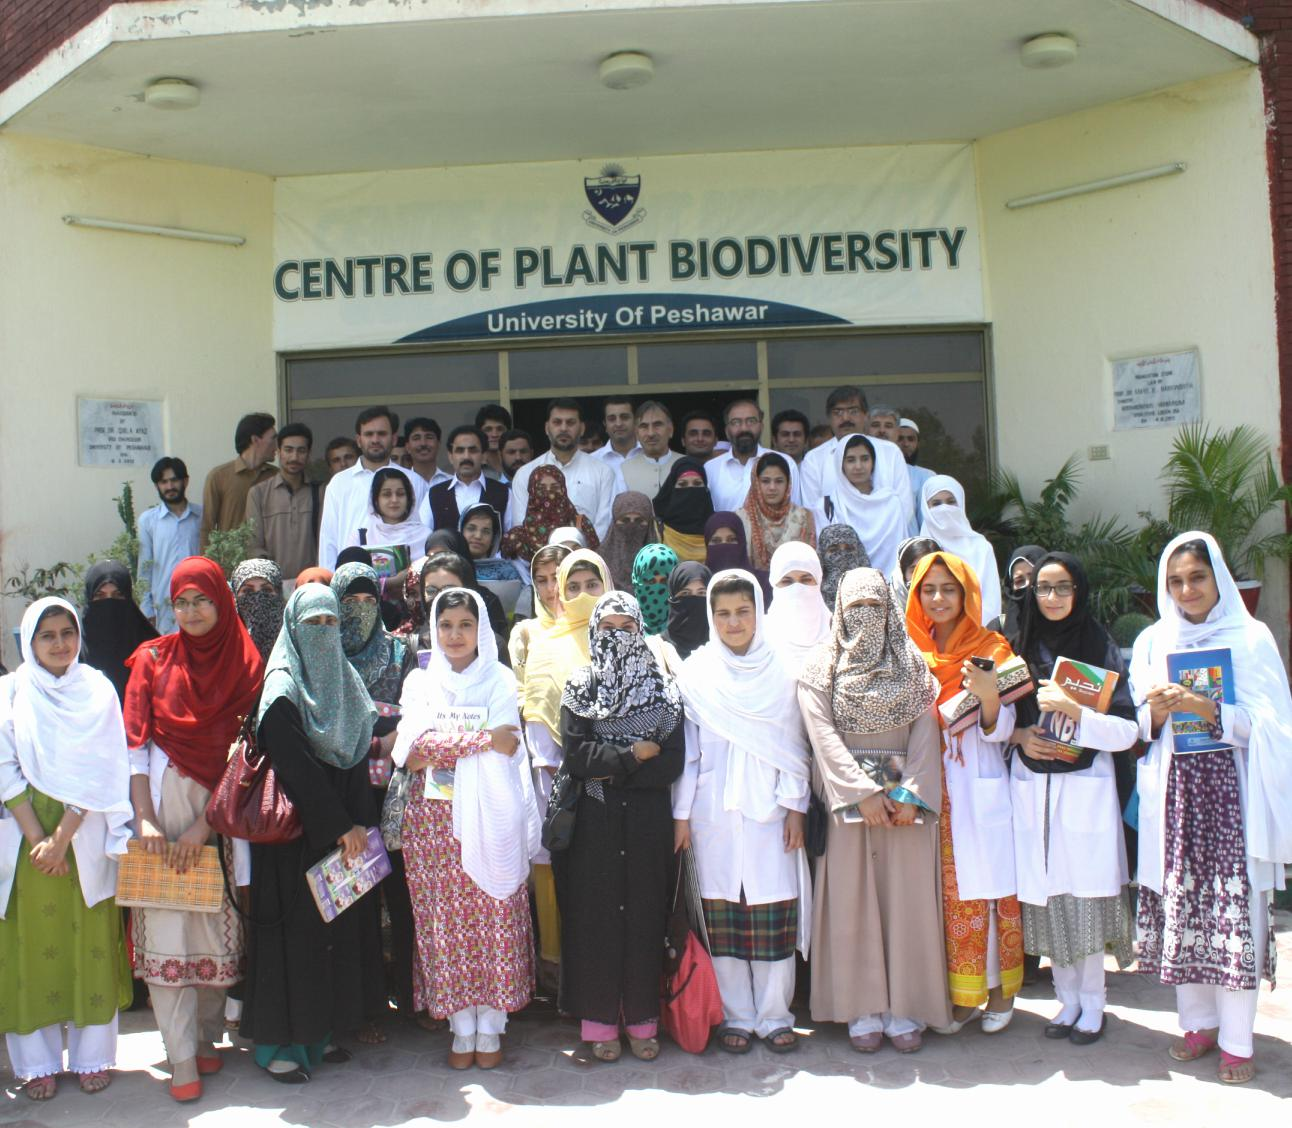 Vice Chancellor UoP Prof. Dr. Muhammad Rasul Jan in group photo with students and staff at Azakhel Botanical Garden, UoP